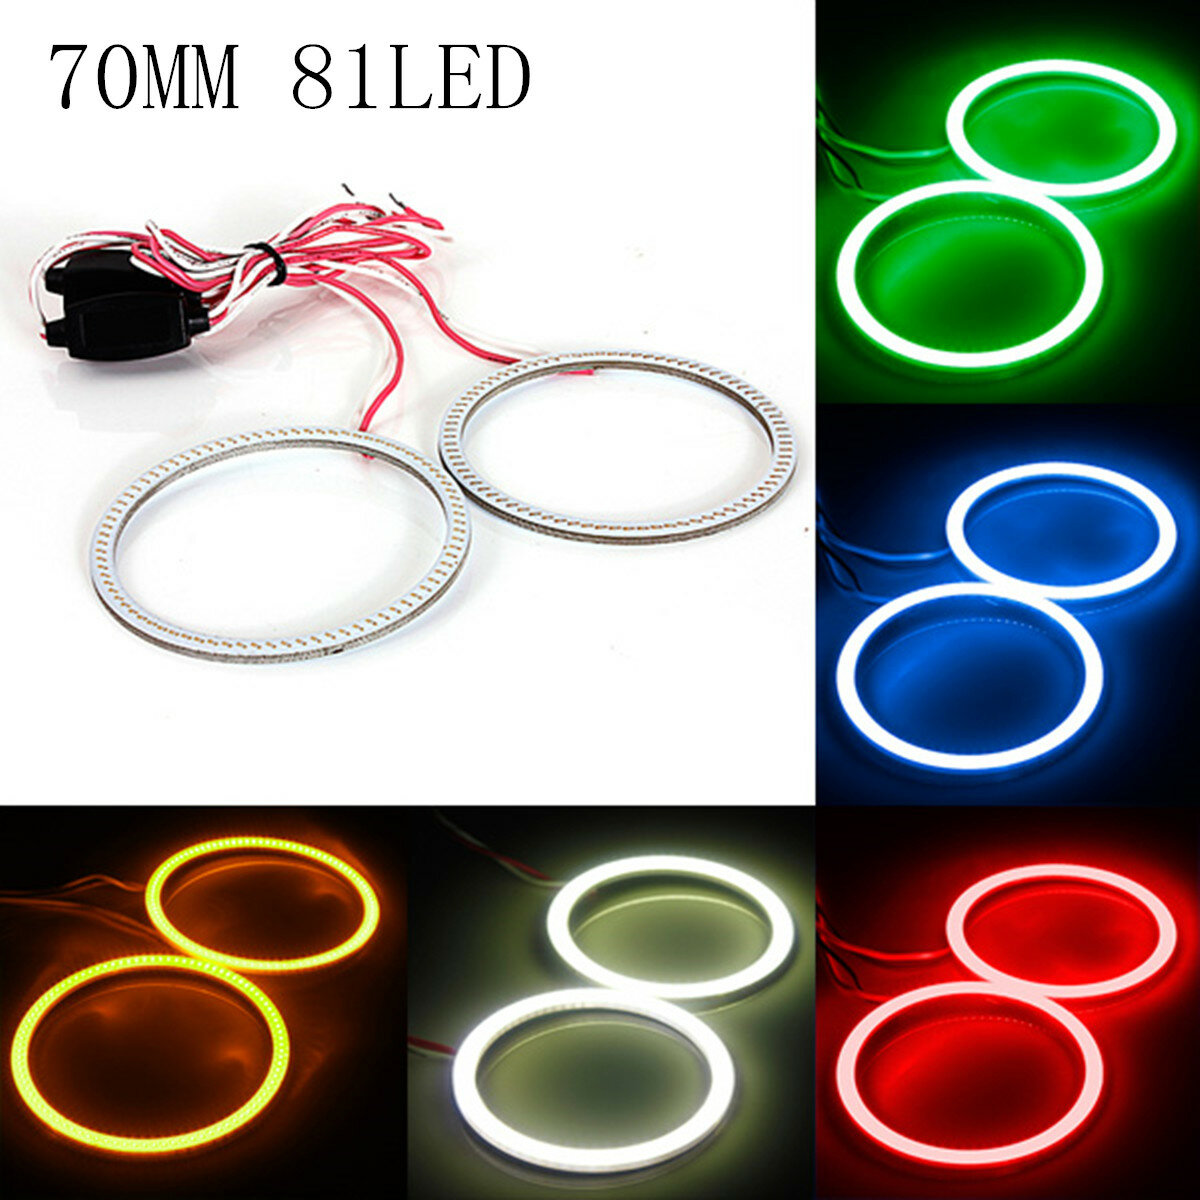 Küchenlampe Neon Ring 70mm Cob Led Angel Eyes Lights Lampe D Anneau Halo 12v 24v 300lm Pour Bmw